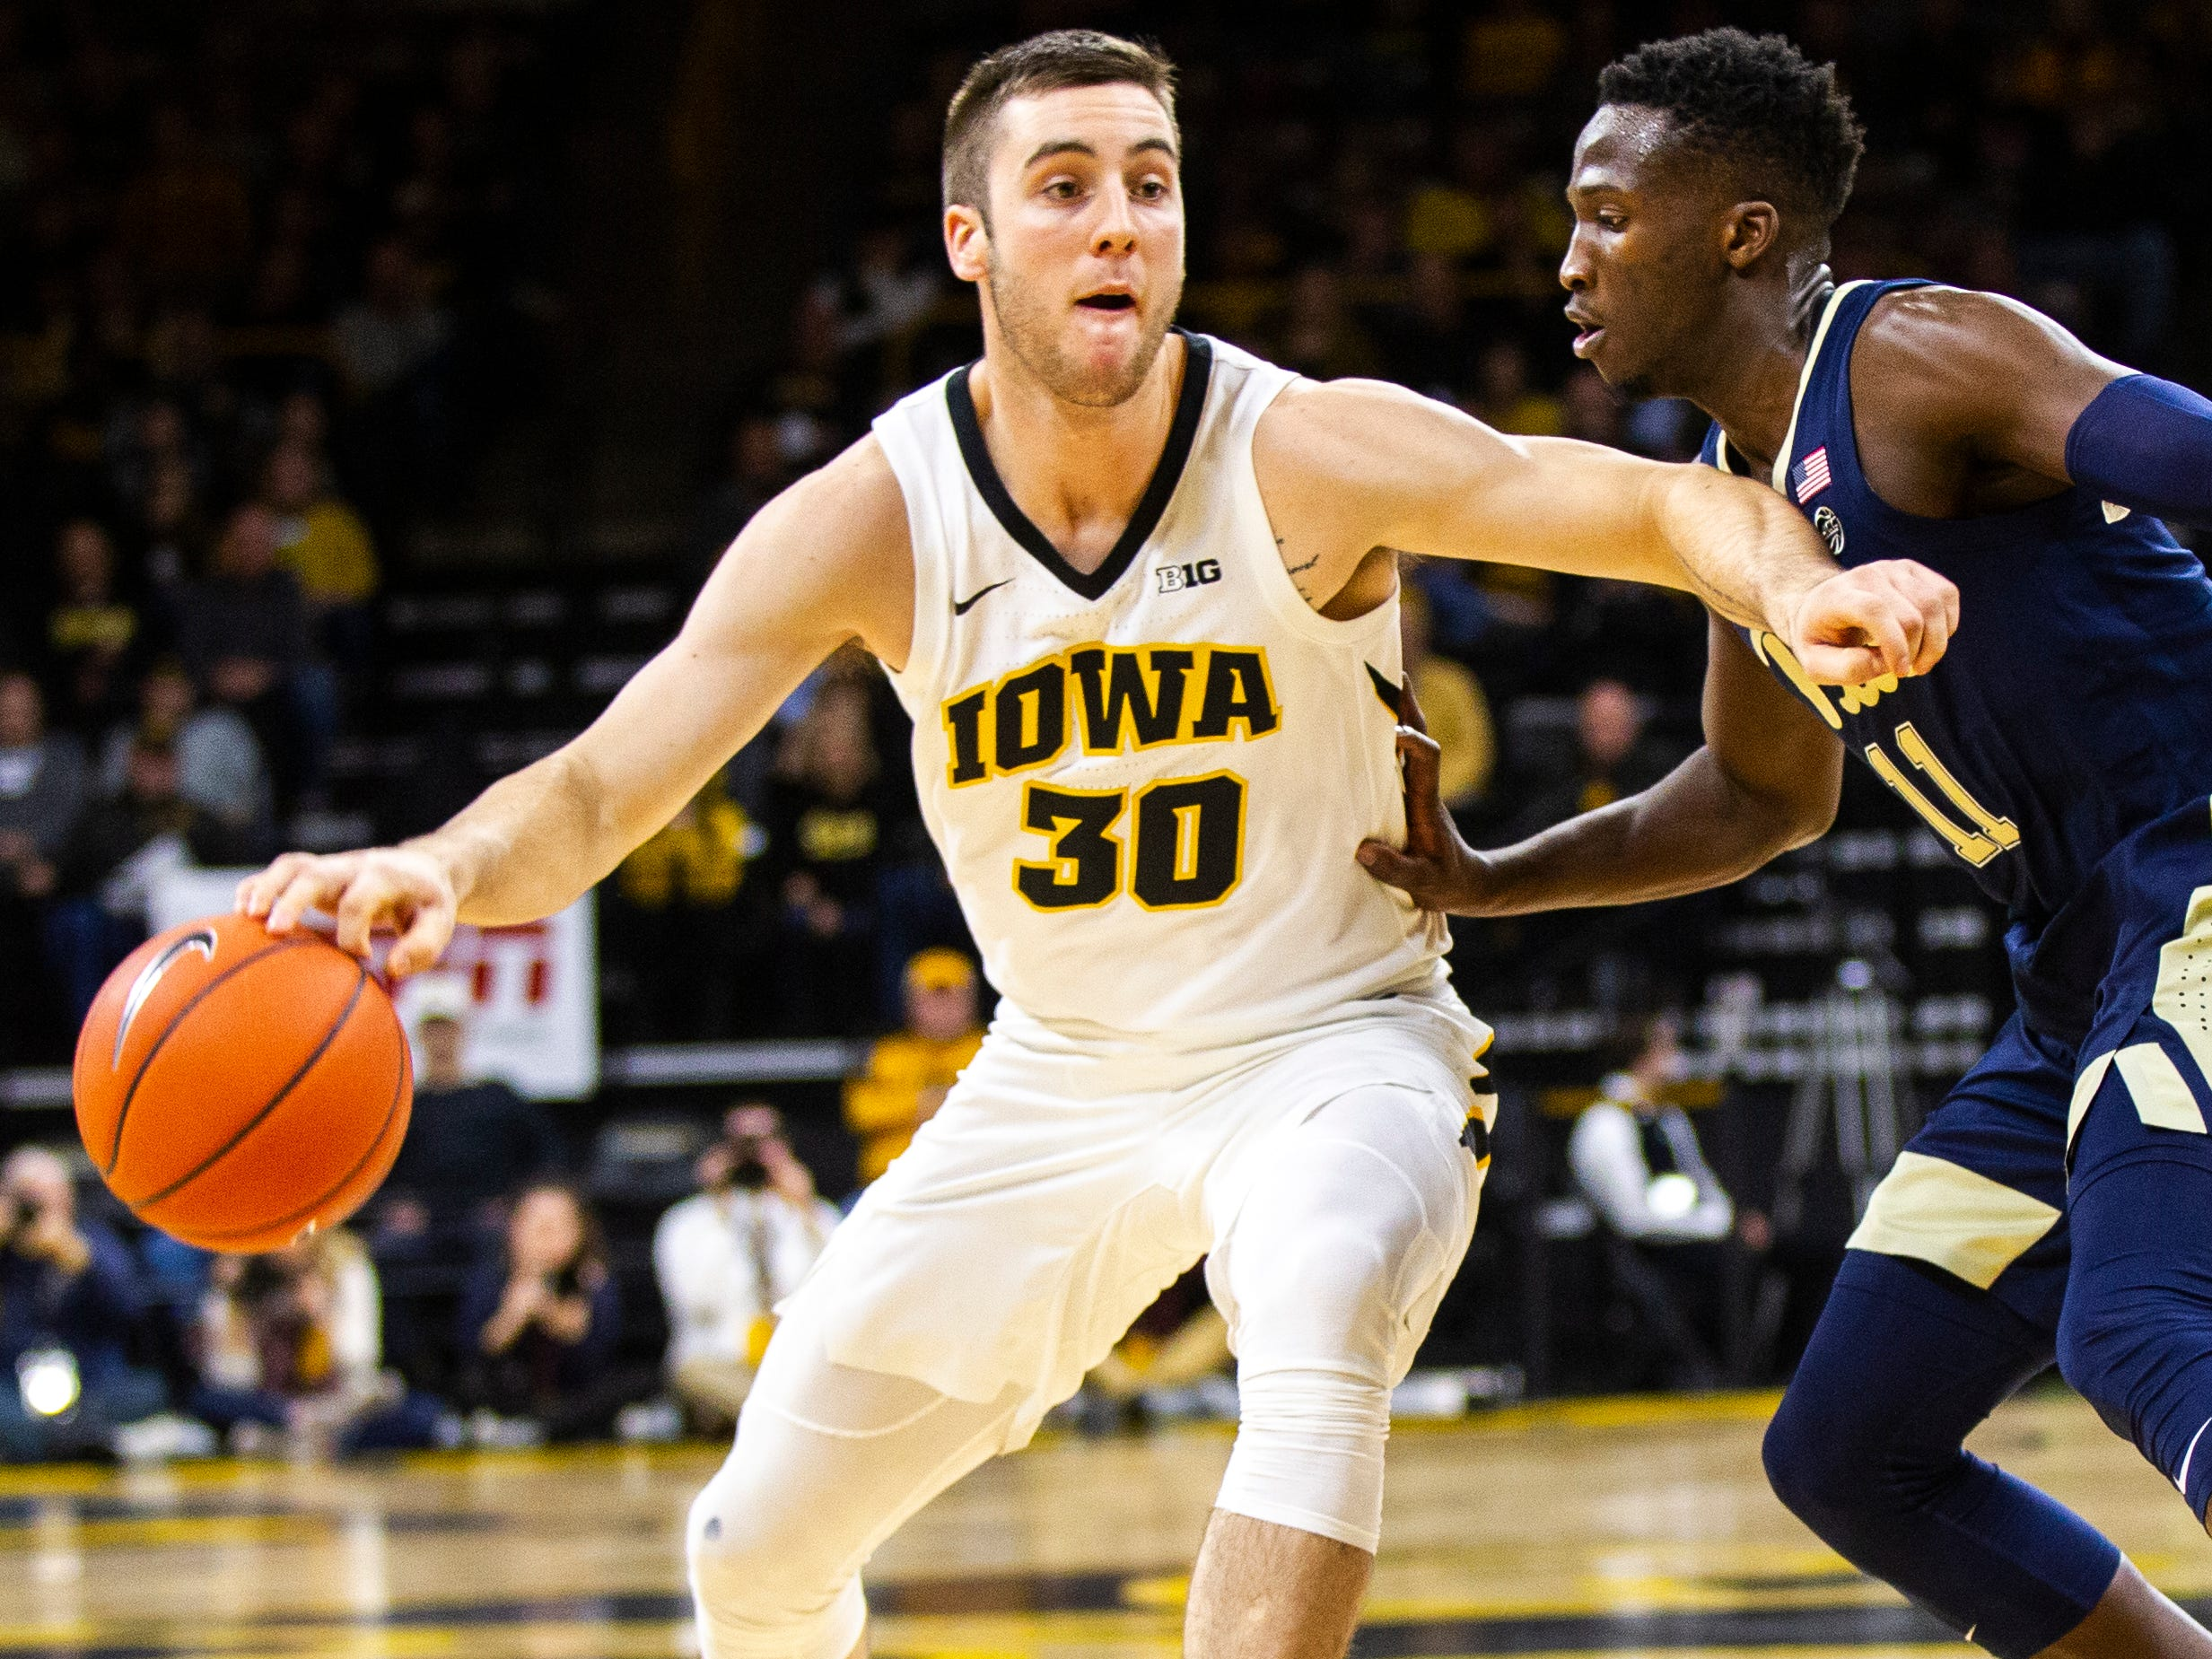 Iowa guard Connor McCaffery (30) drives to the hoop past Pittsburgh's Sidy N'Dir (11) during a NCAA men's basketball game on Tuesday, Nov. 27, 2018, at Carver-Hawkeye Arena in Iowa City.